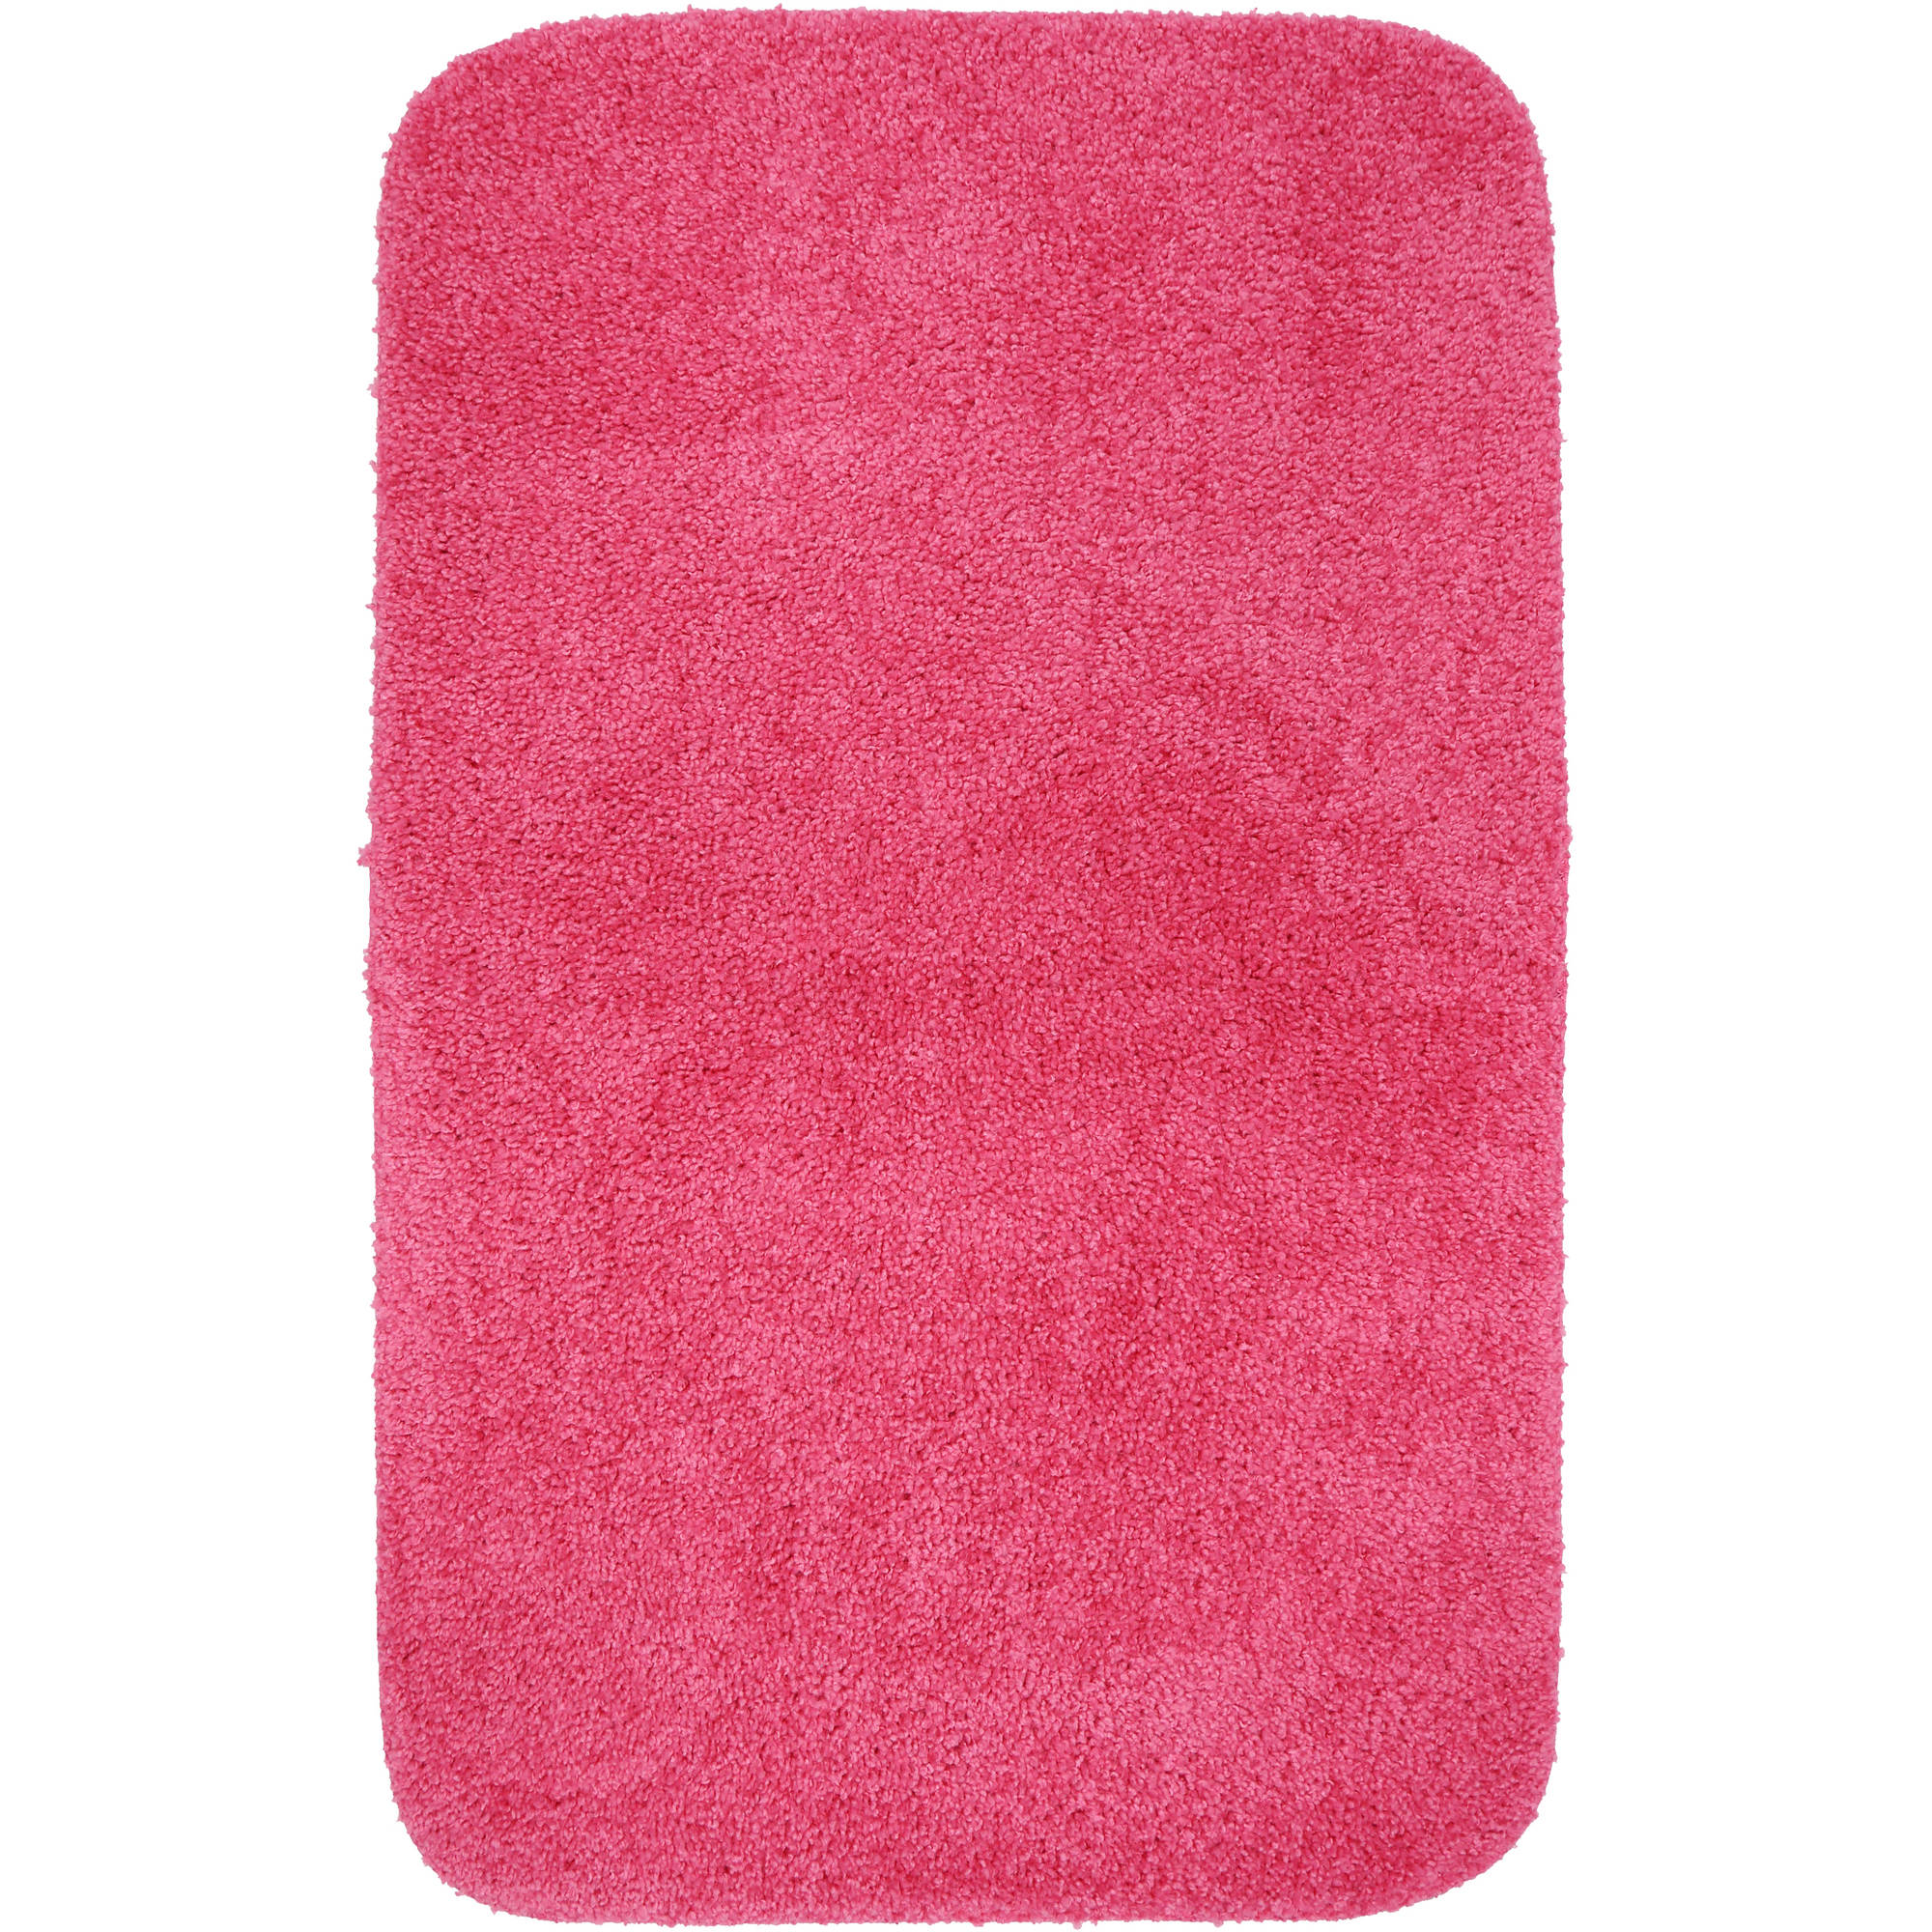 mainstays basic bath rug, solid - walmart